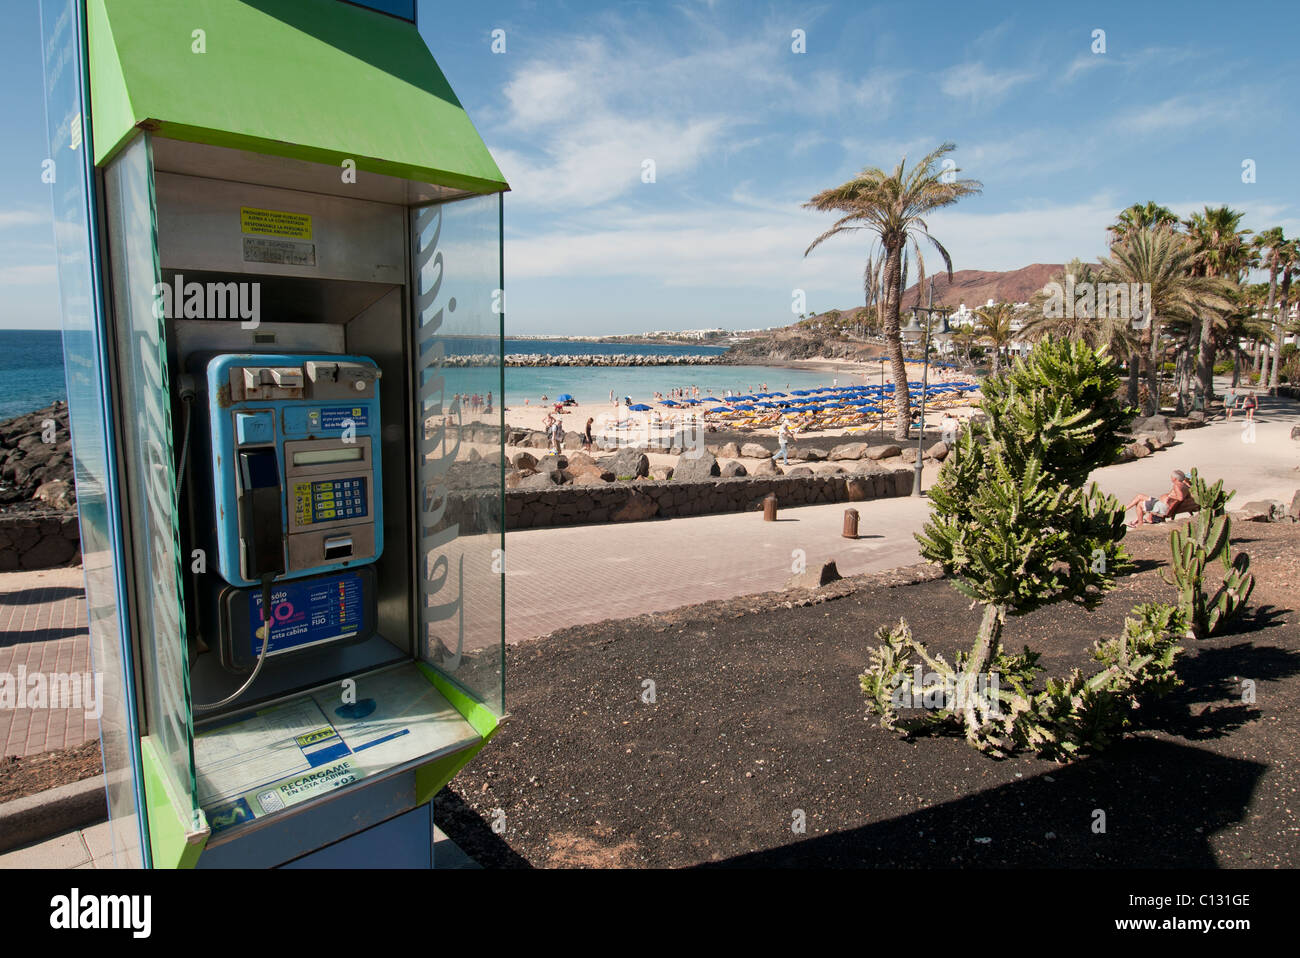 pay phone box in Lanzarote - Stock Image